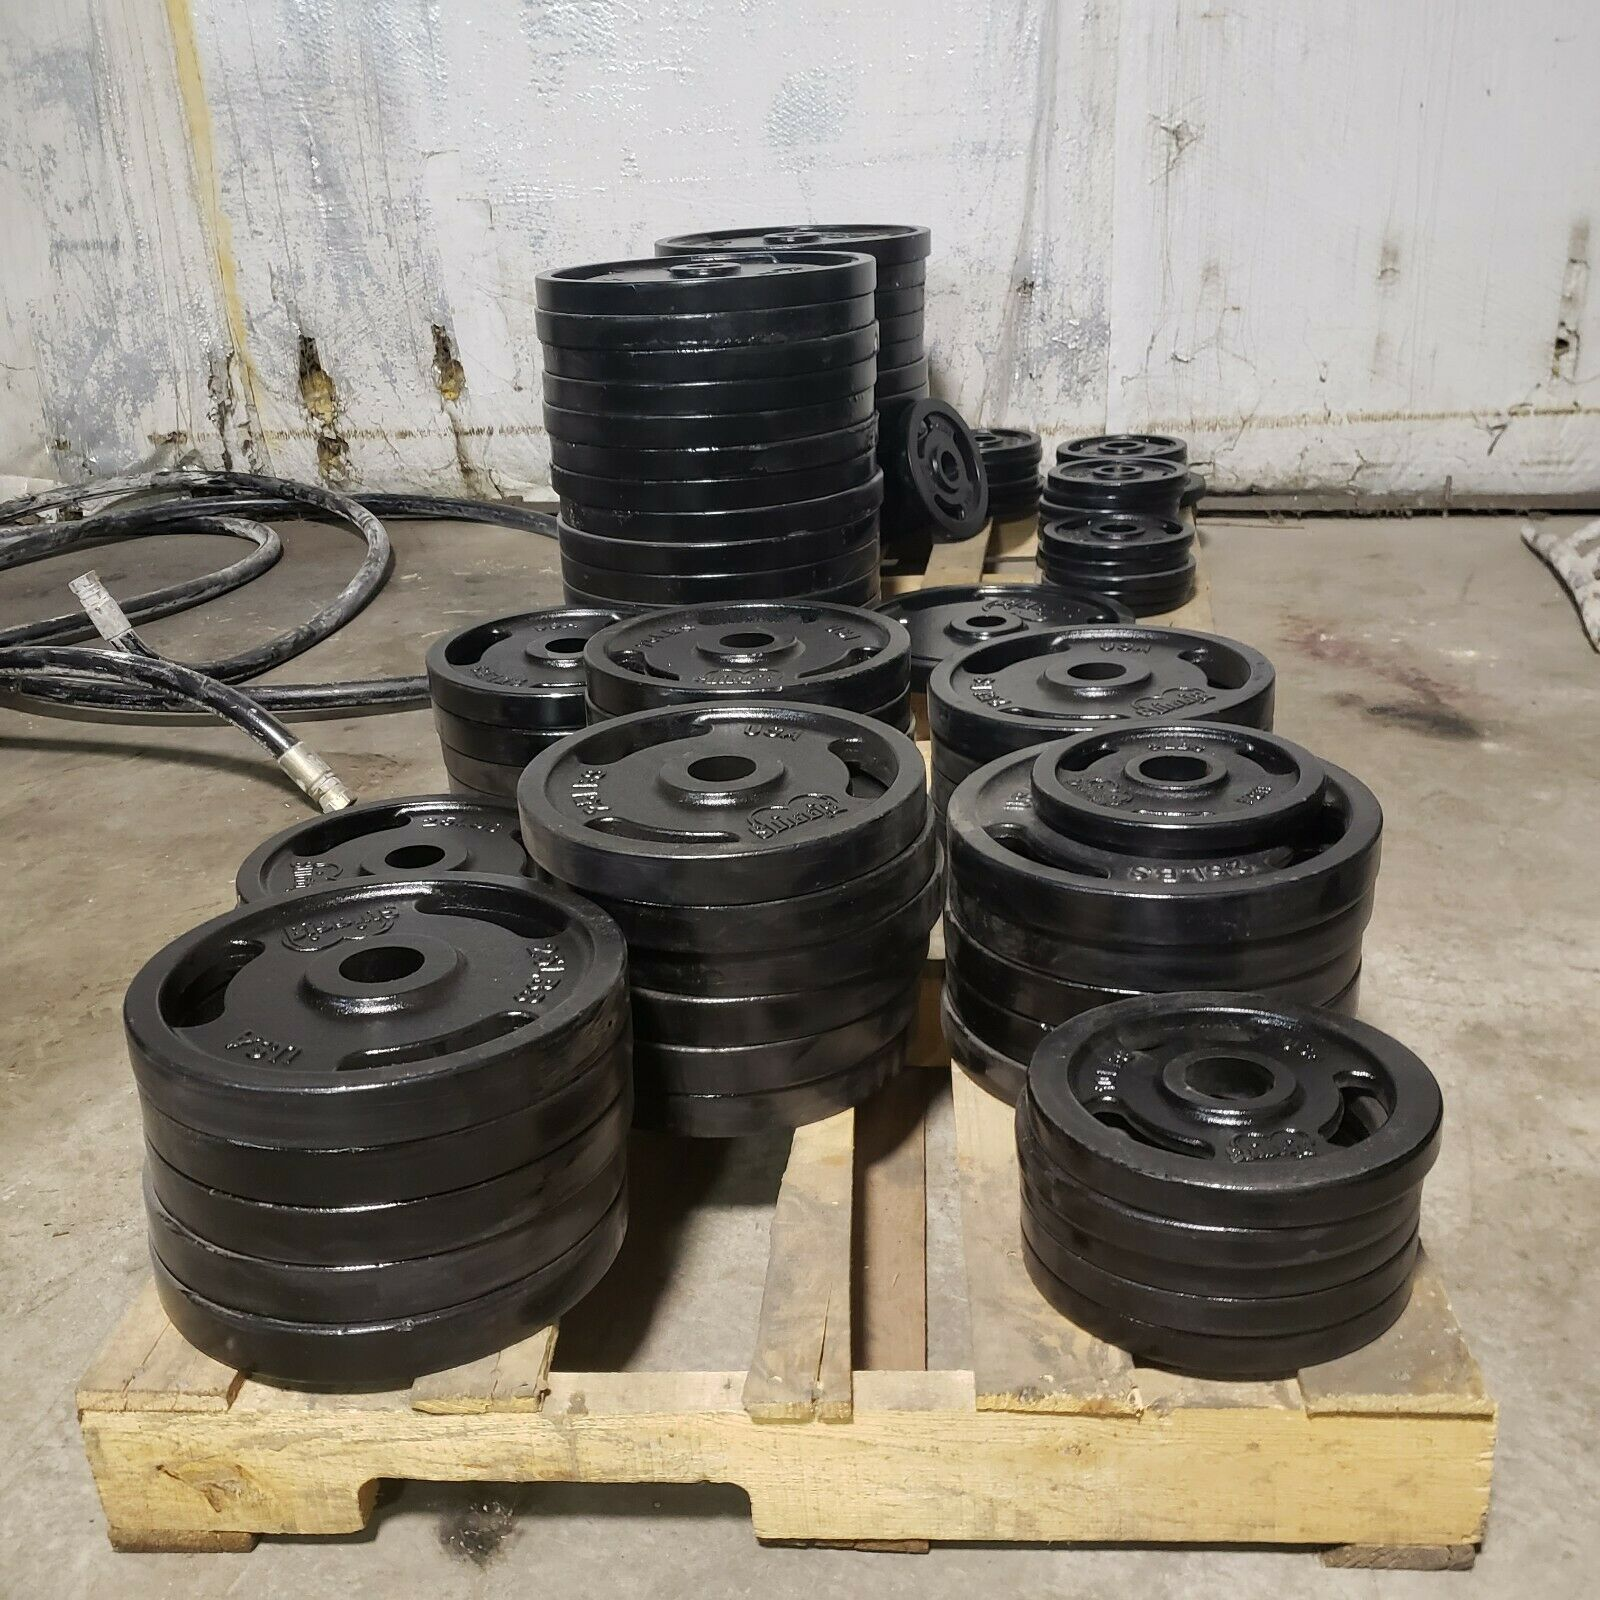 2″ Olympic Weight Plates,(Rejects) American Made PAINT DEFECTS, LIMITED SUPPLY!!